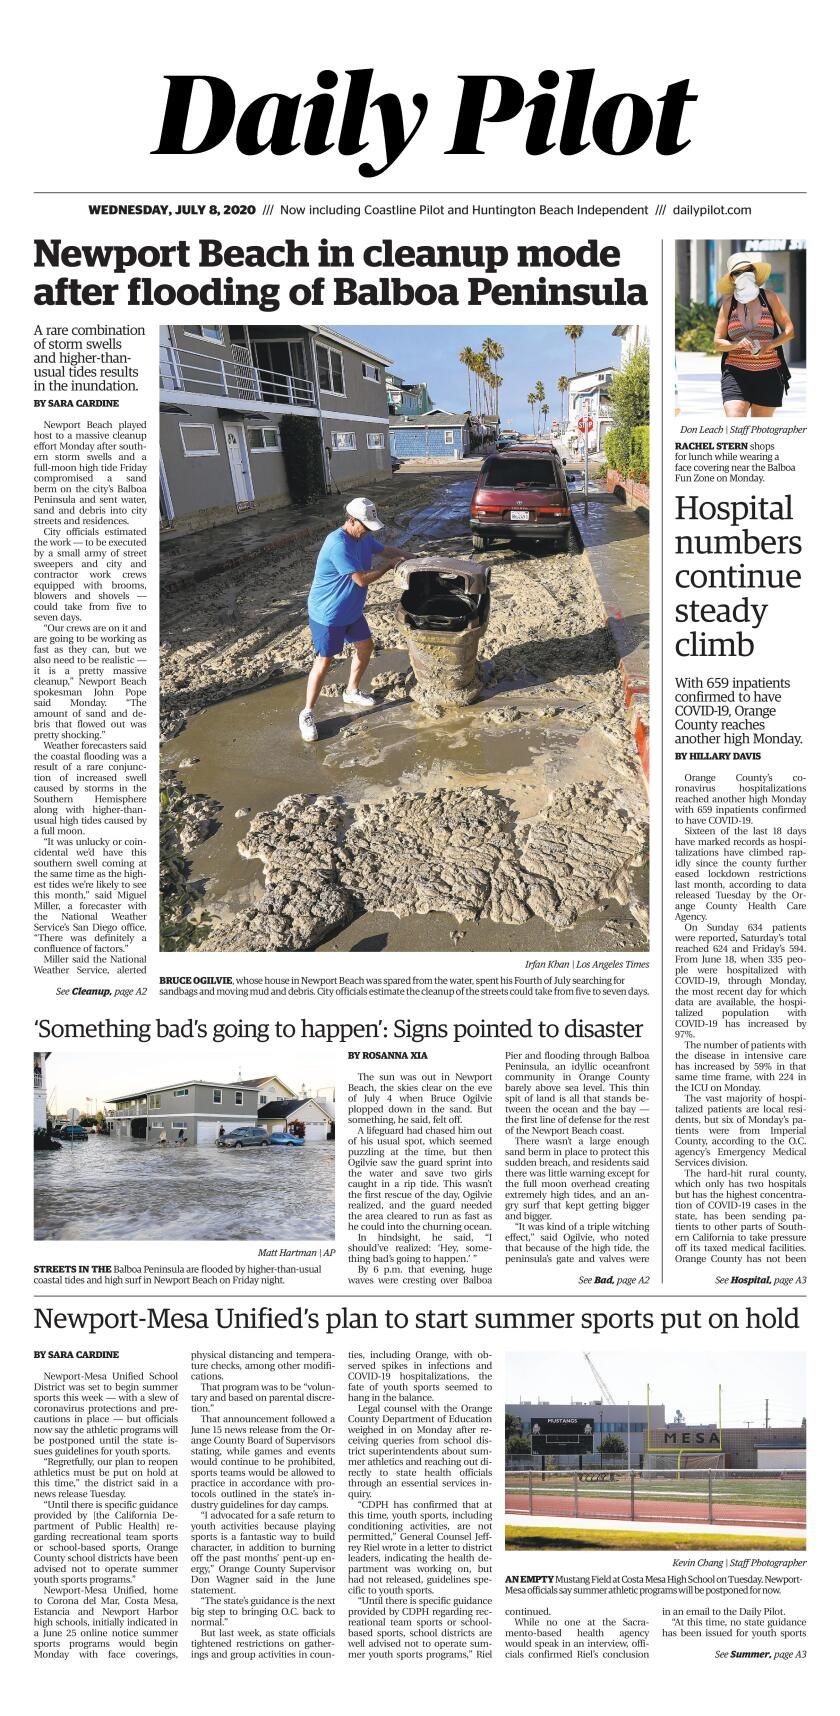 Daily Pilot e-Newspaper: Wednesday, July 8, 2020 Cover